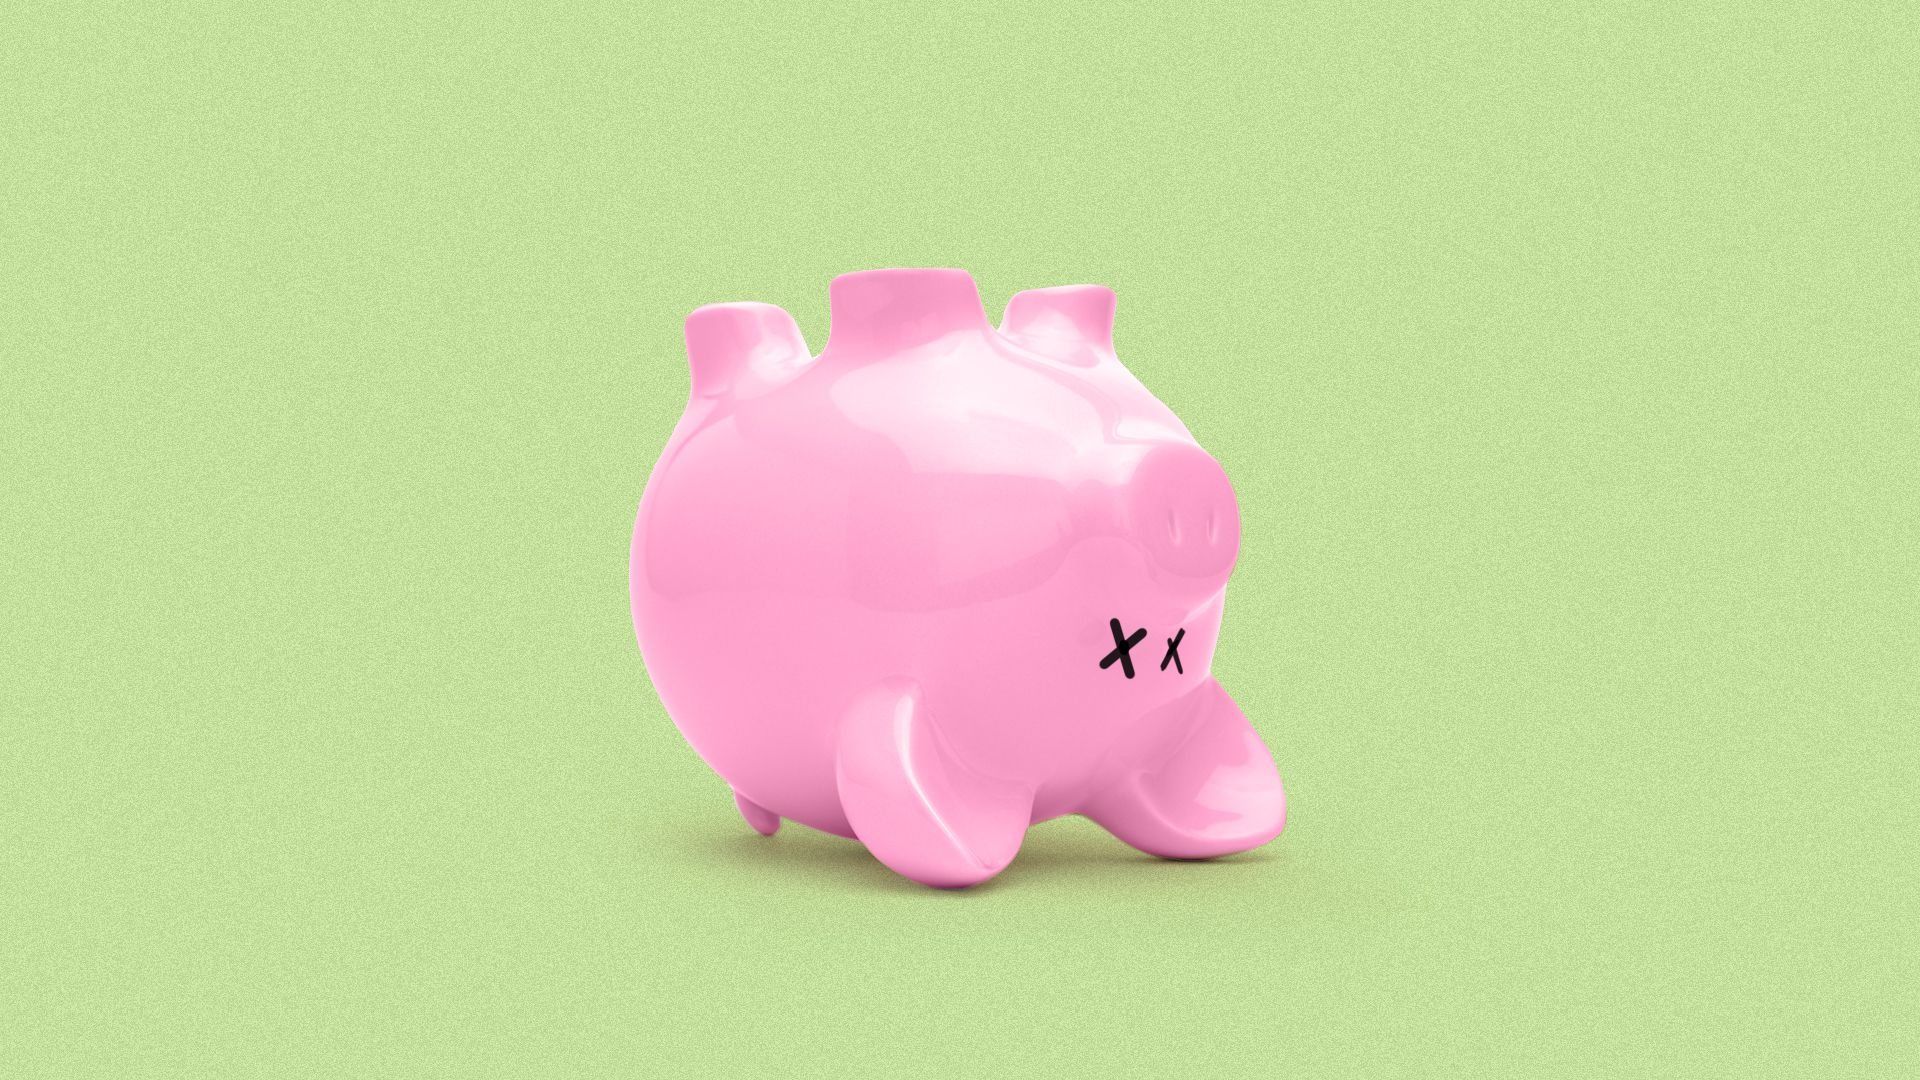 Illustration of a piggy bank on its back with X's for eyes.